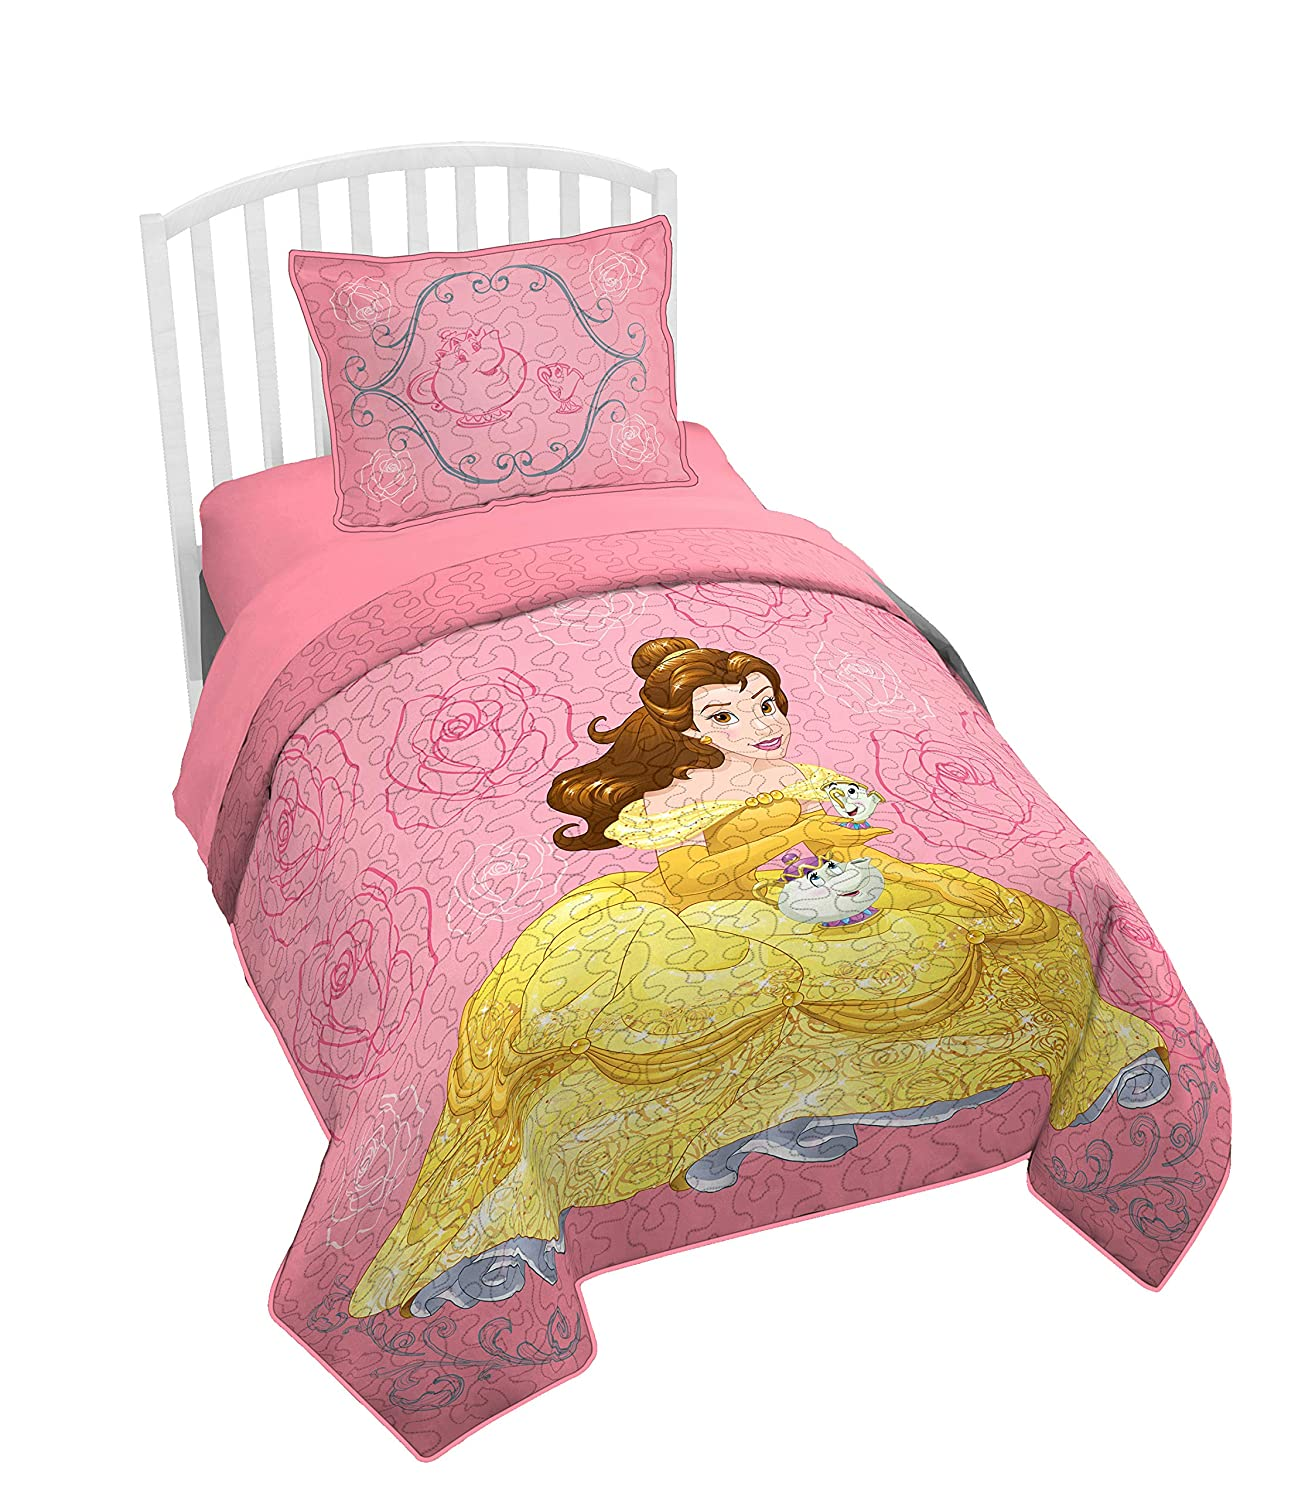 Jay Franco Disney Beauty and The Beast Belle Twin/Full Quilt & Sham Set - Super Soft Kids Bedding Features Belle - Fade Resistant Polyester (Official Disney Product)